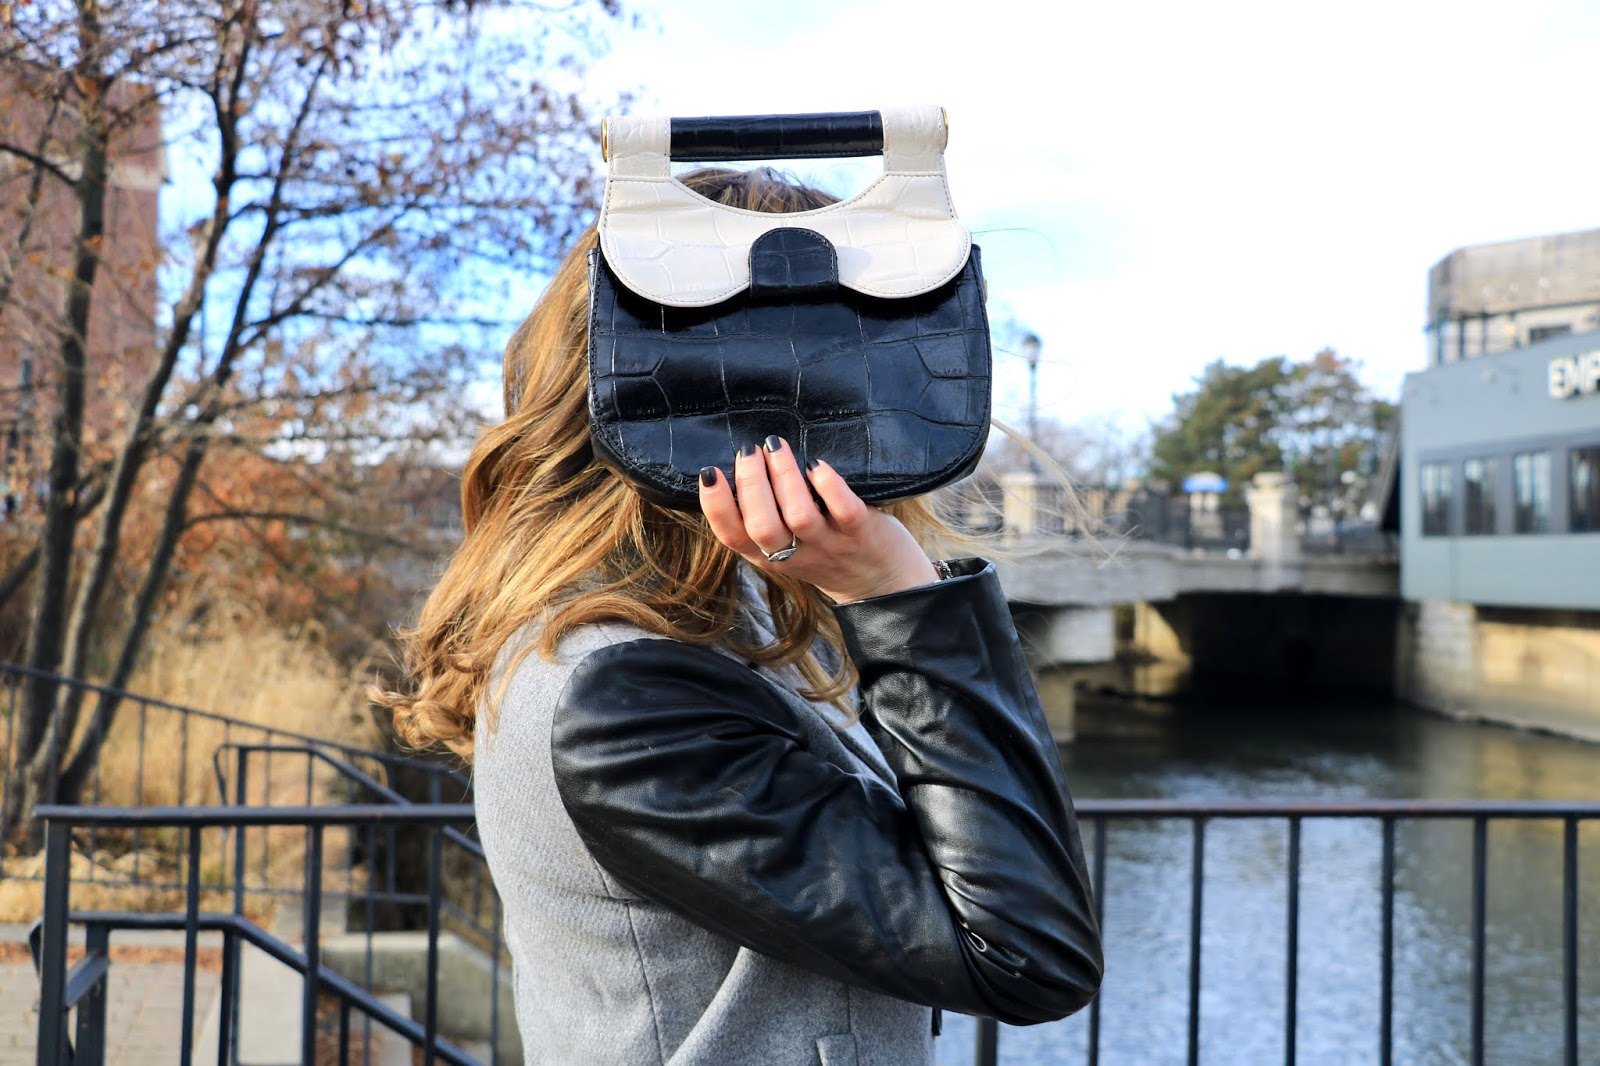 Nyc fashion blogger Kathleen Harper wearing a Staud black and white croc leather purse.